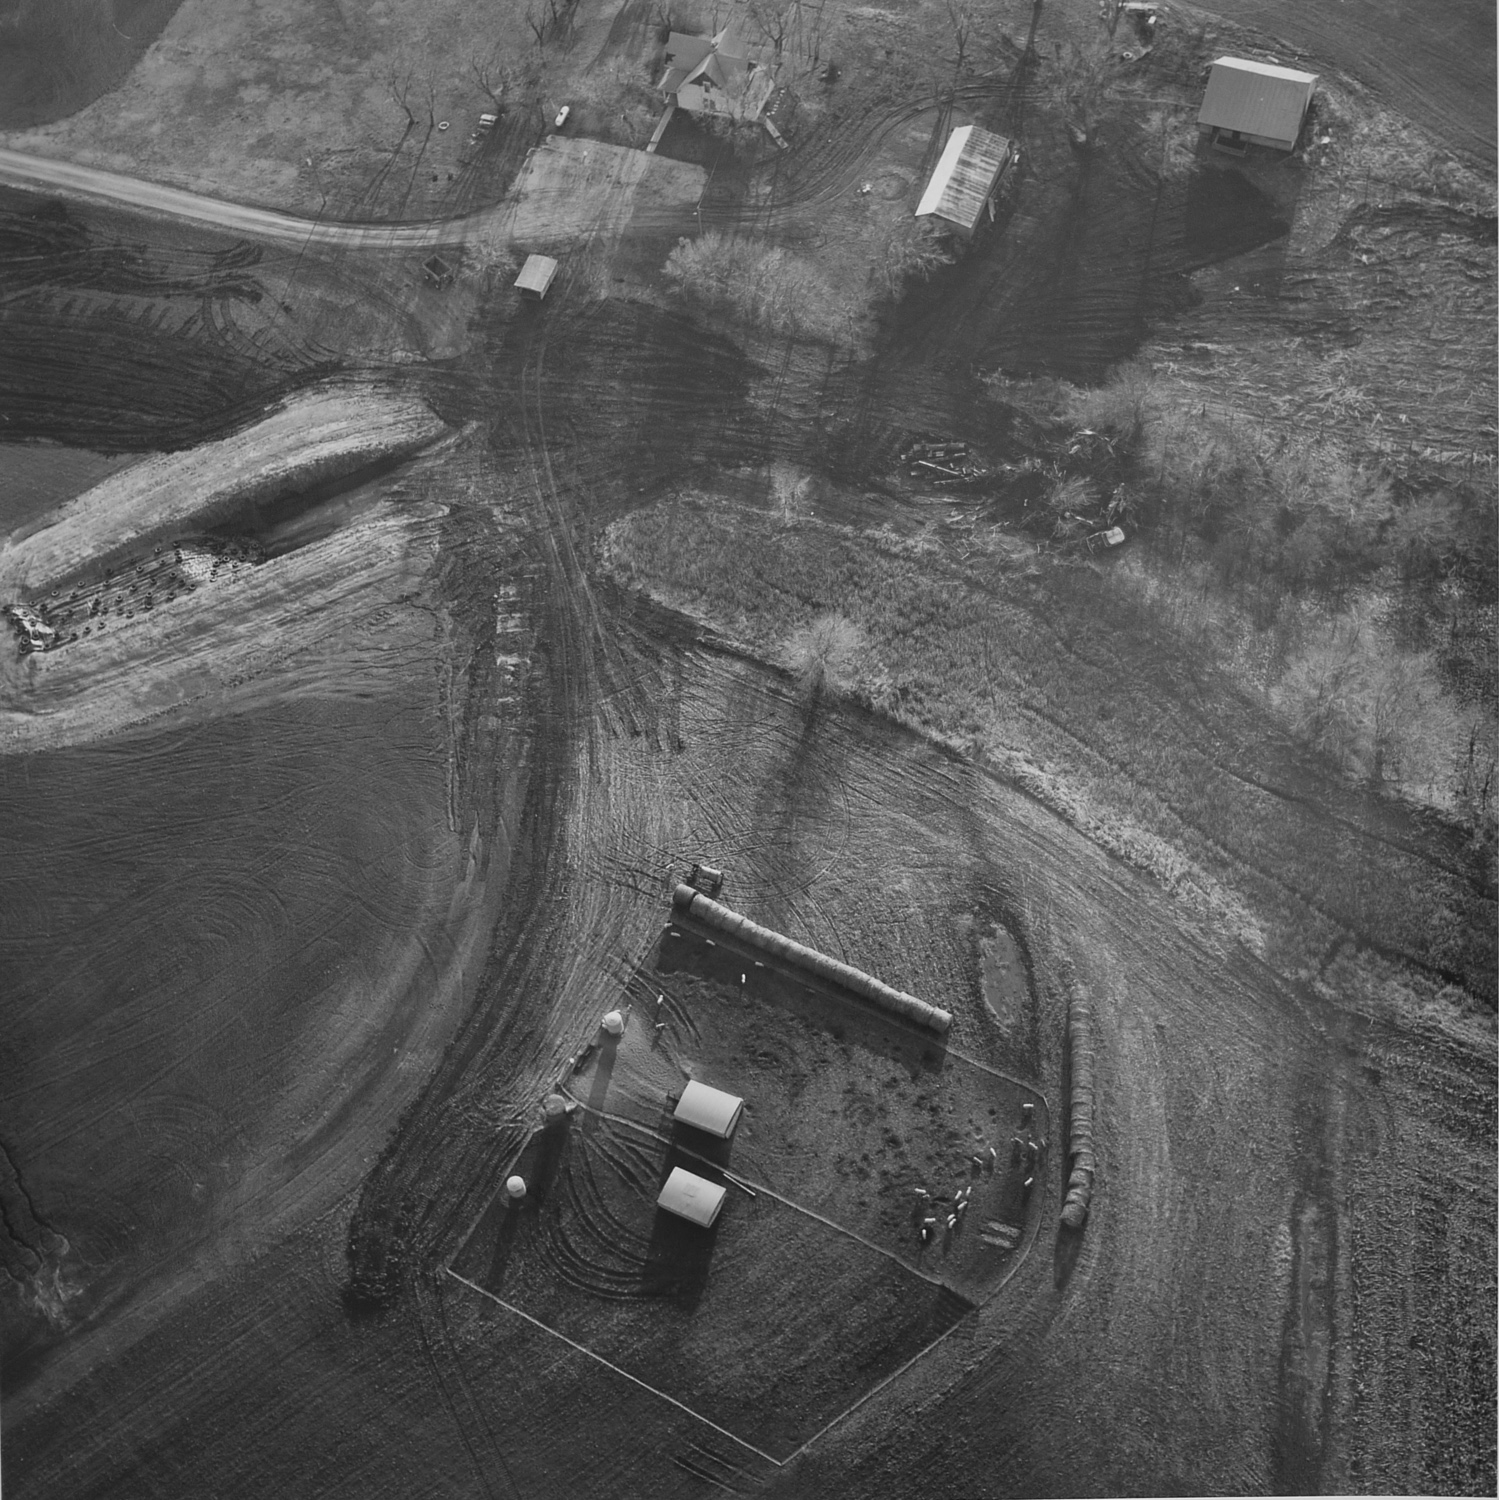 Farm with hogs and tires, 1992.jpg